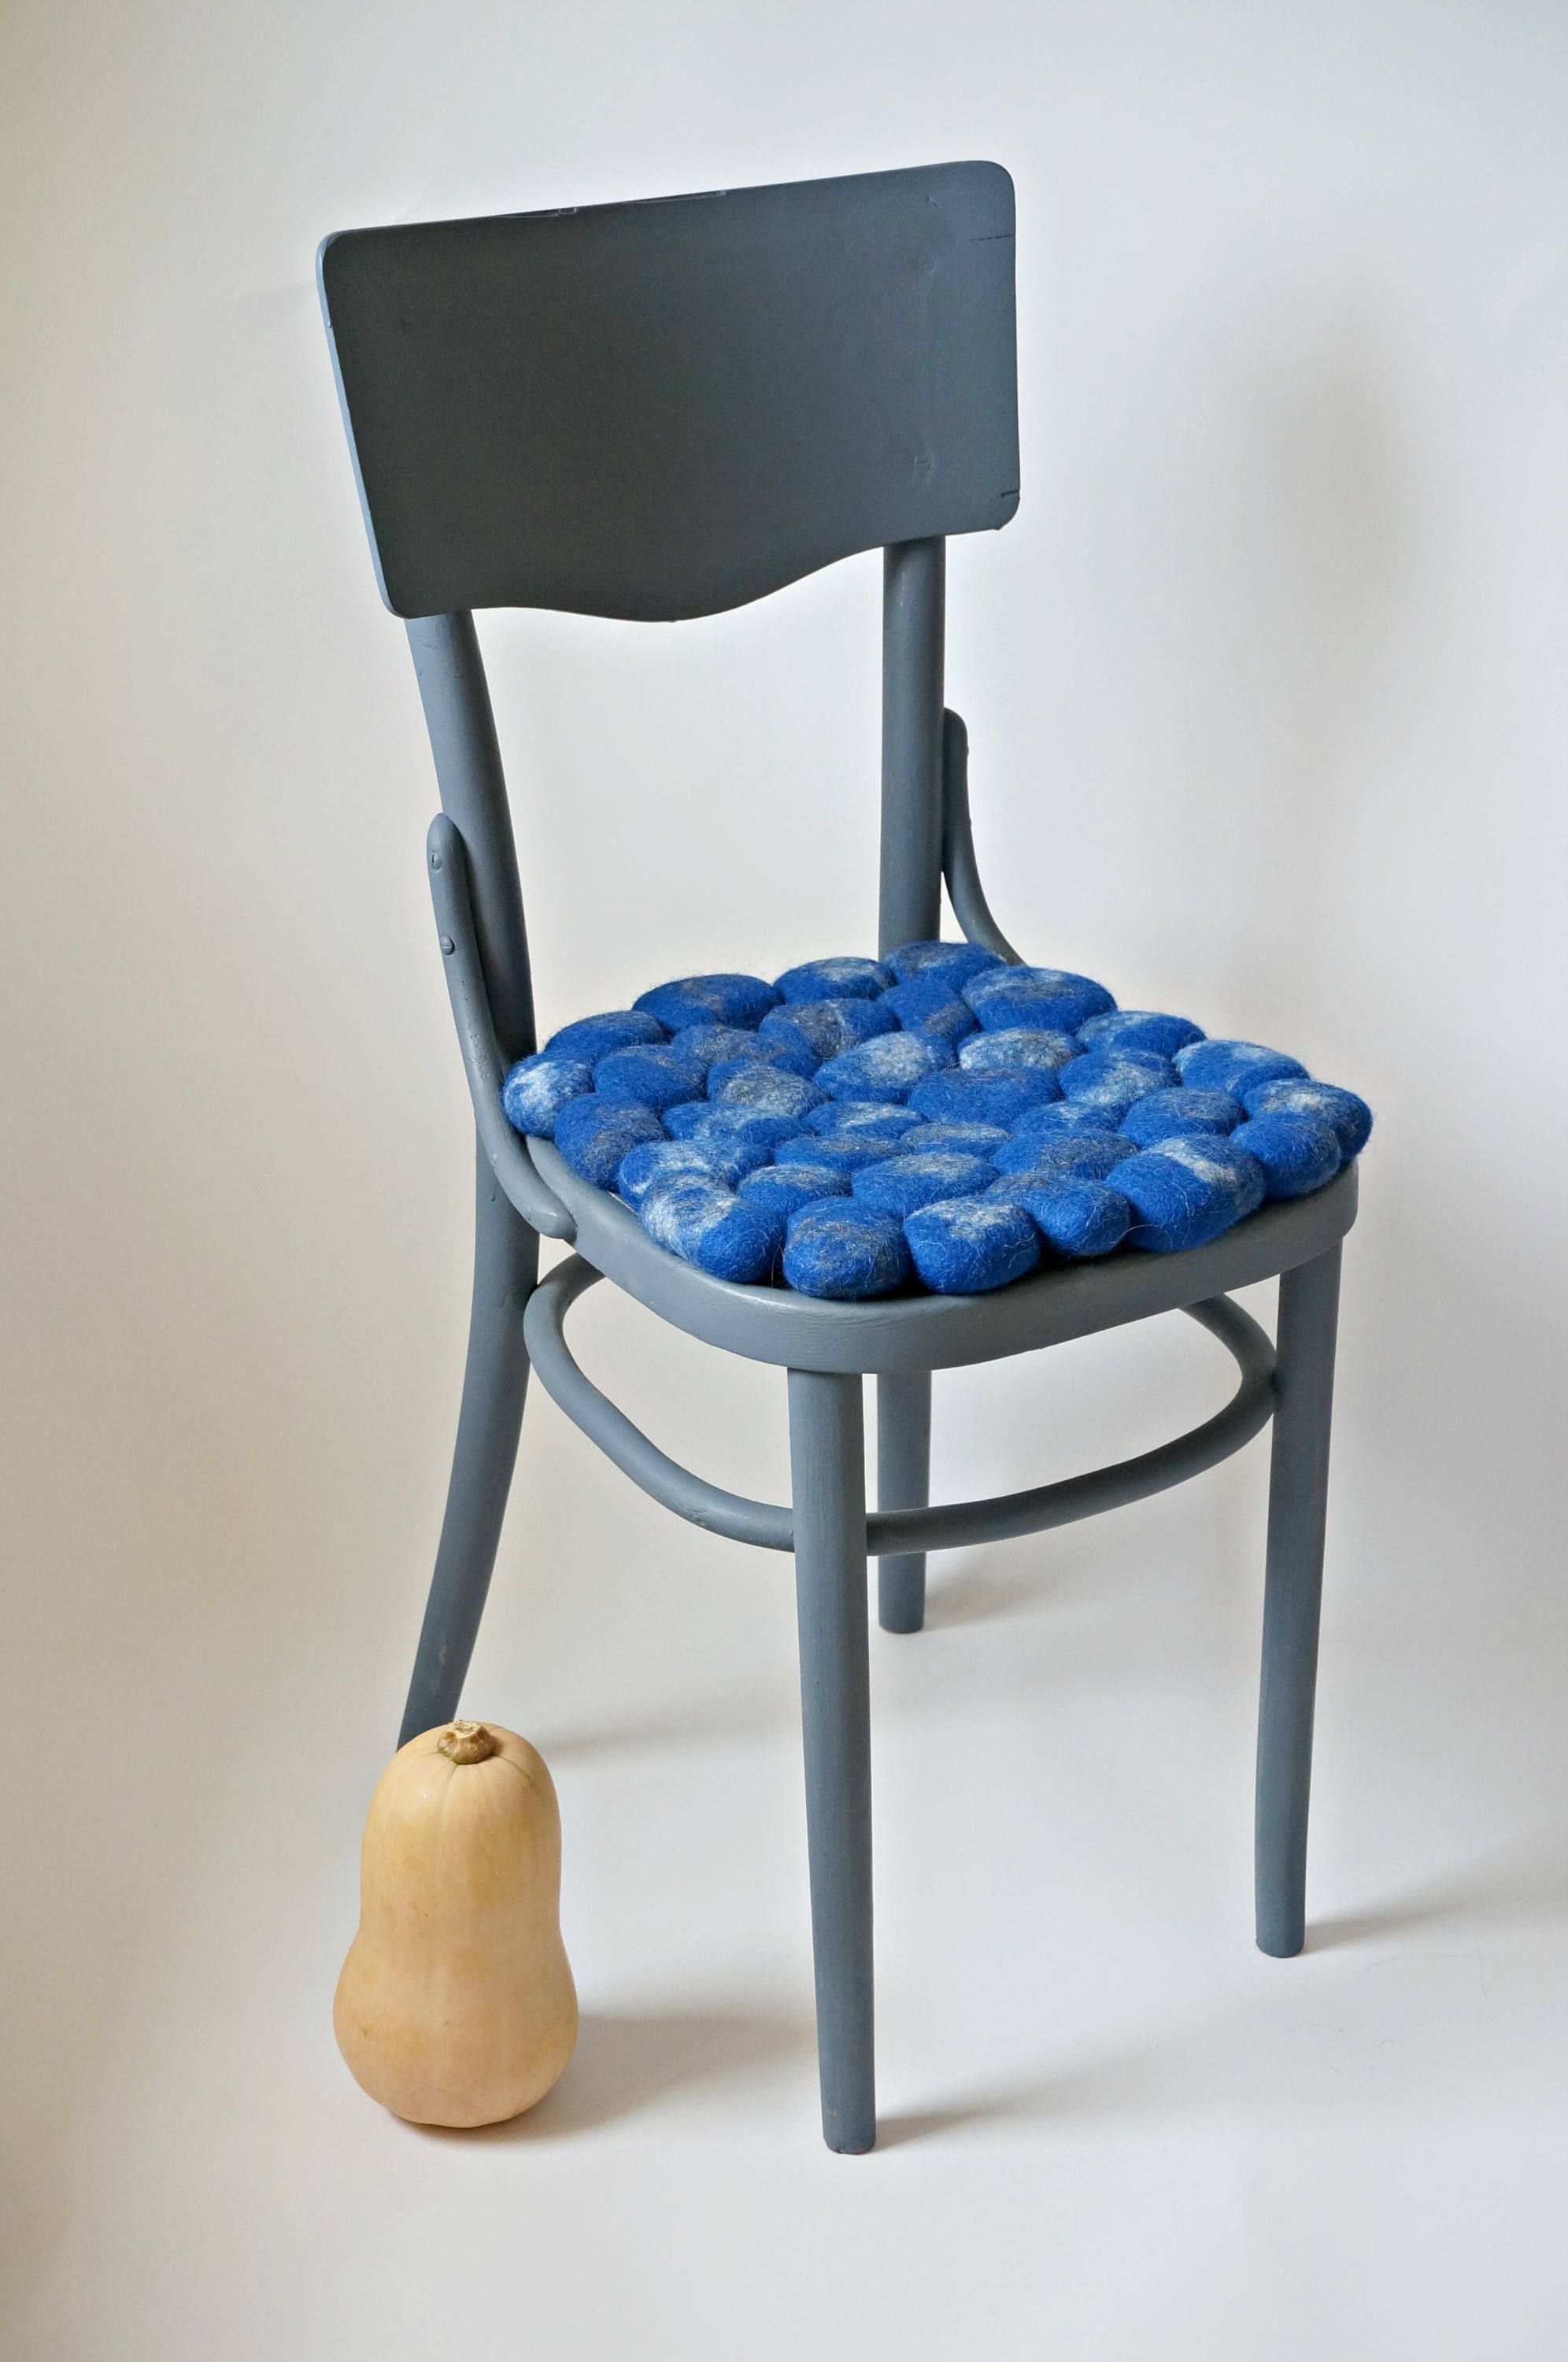 Comfortable and modern look to chair or stool seat cushion